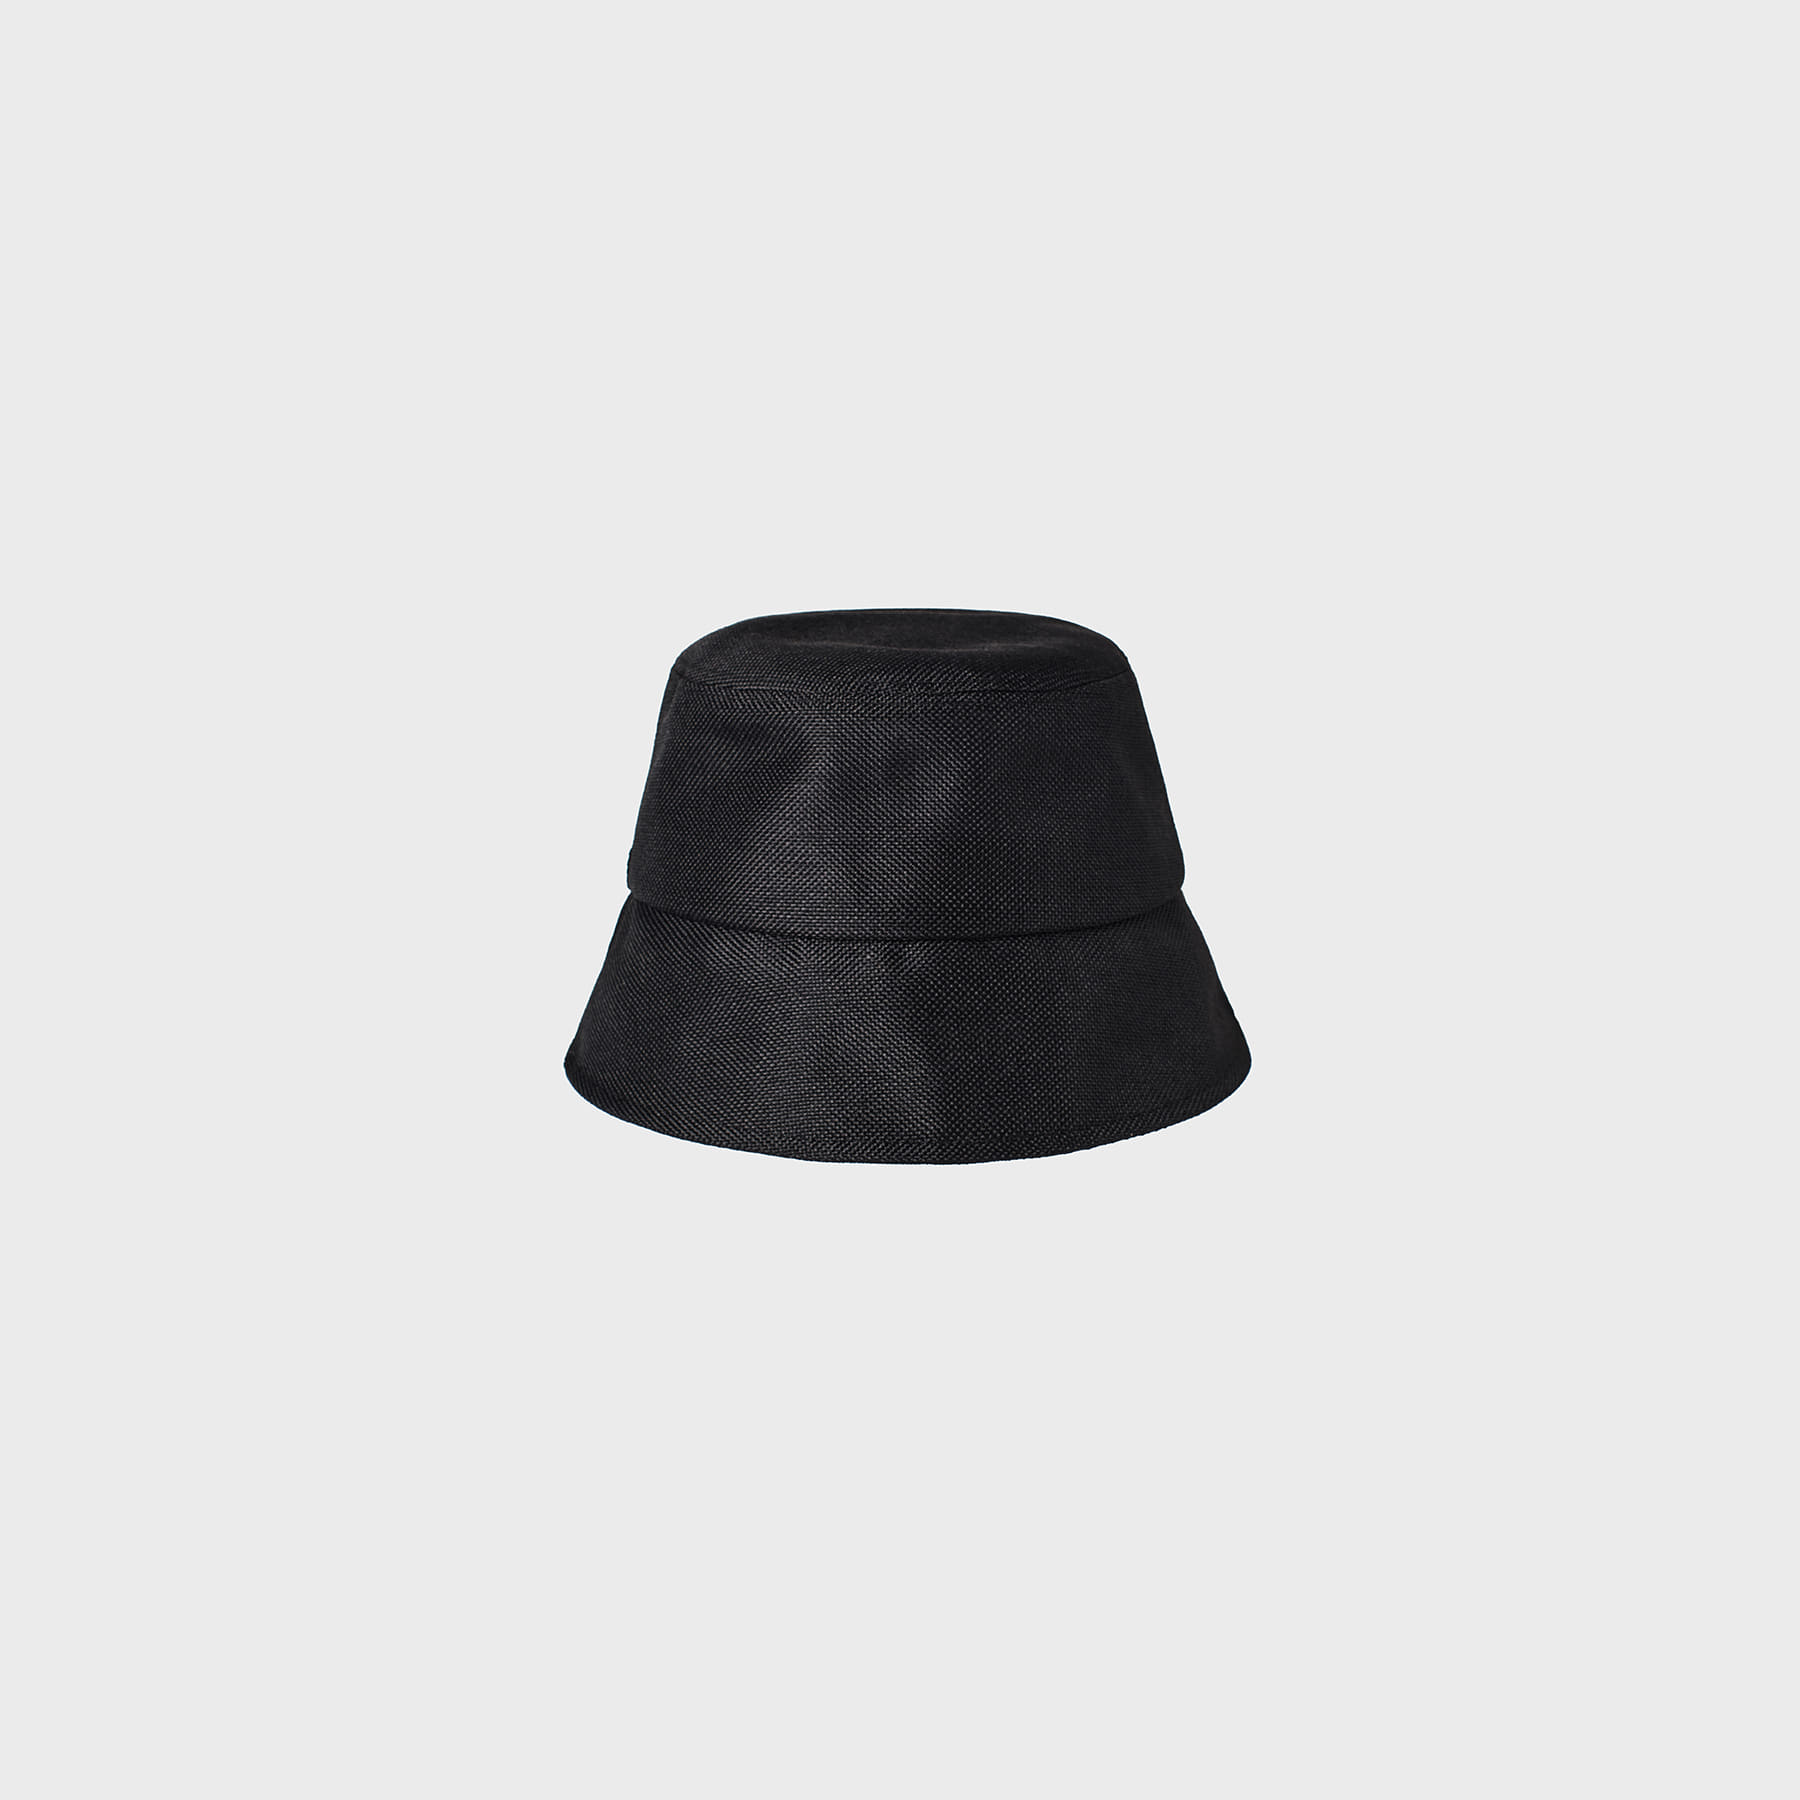 Mini roll hat (black)